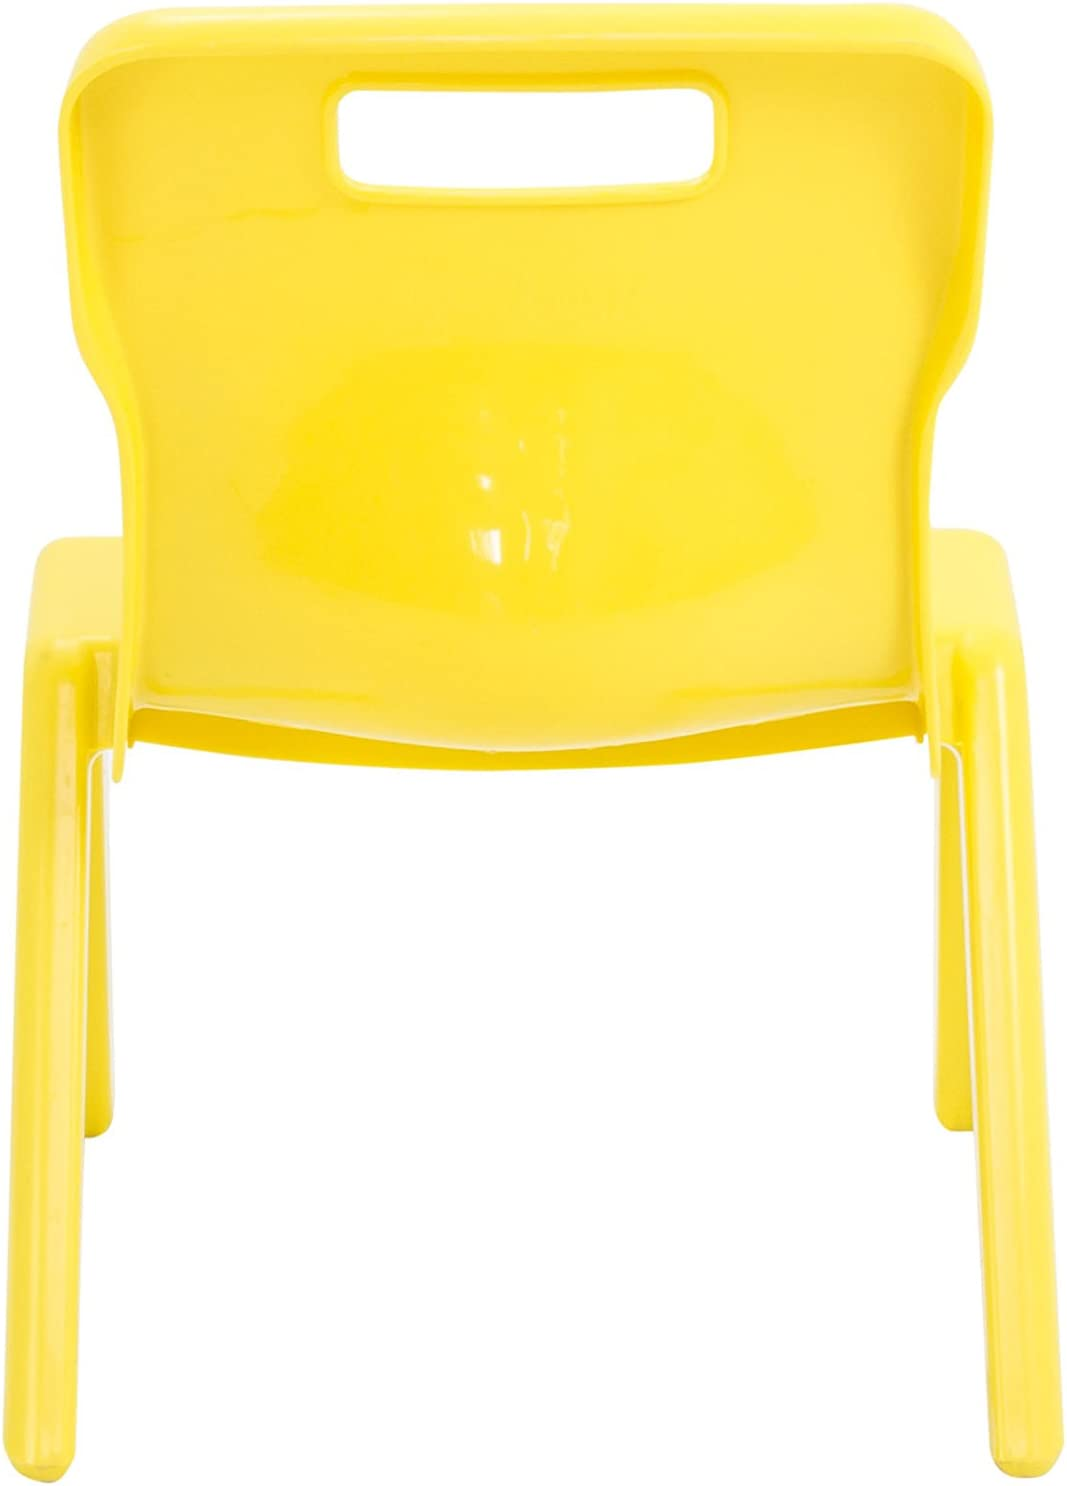 Titan One Piece Classroom Chair Size 1 for Ages 1-2 Years Yellow Plastic